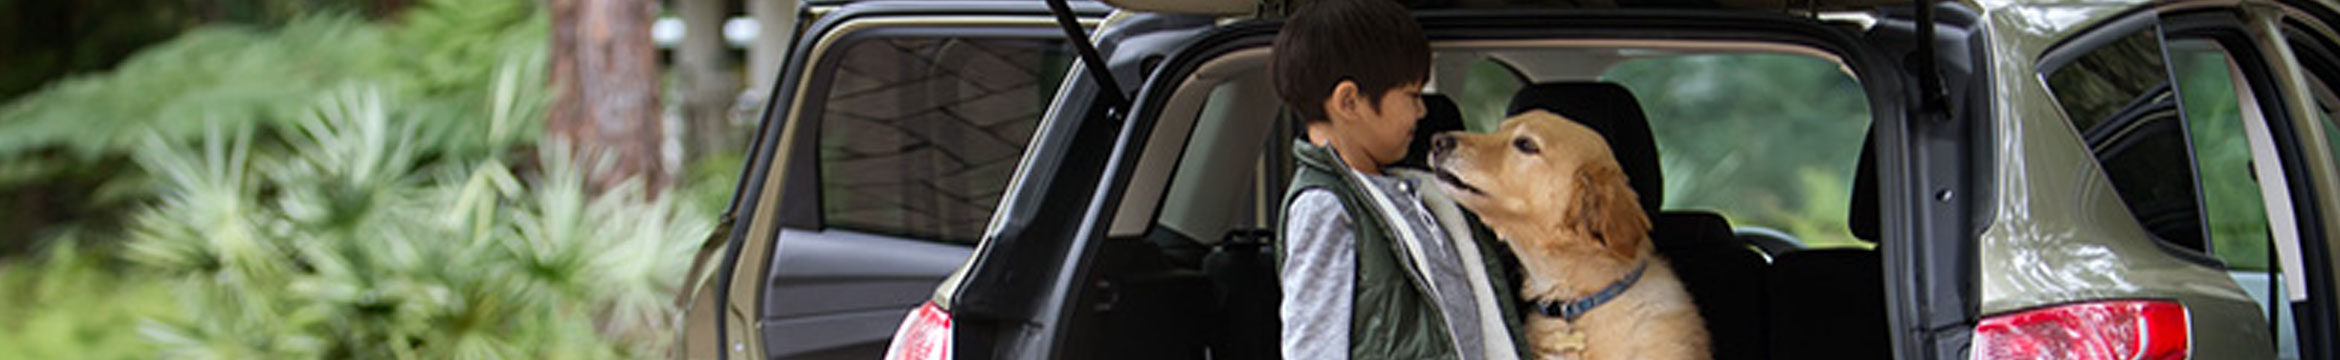 A child and a dog in a car, Allied Insurance